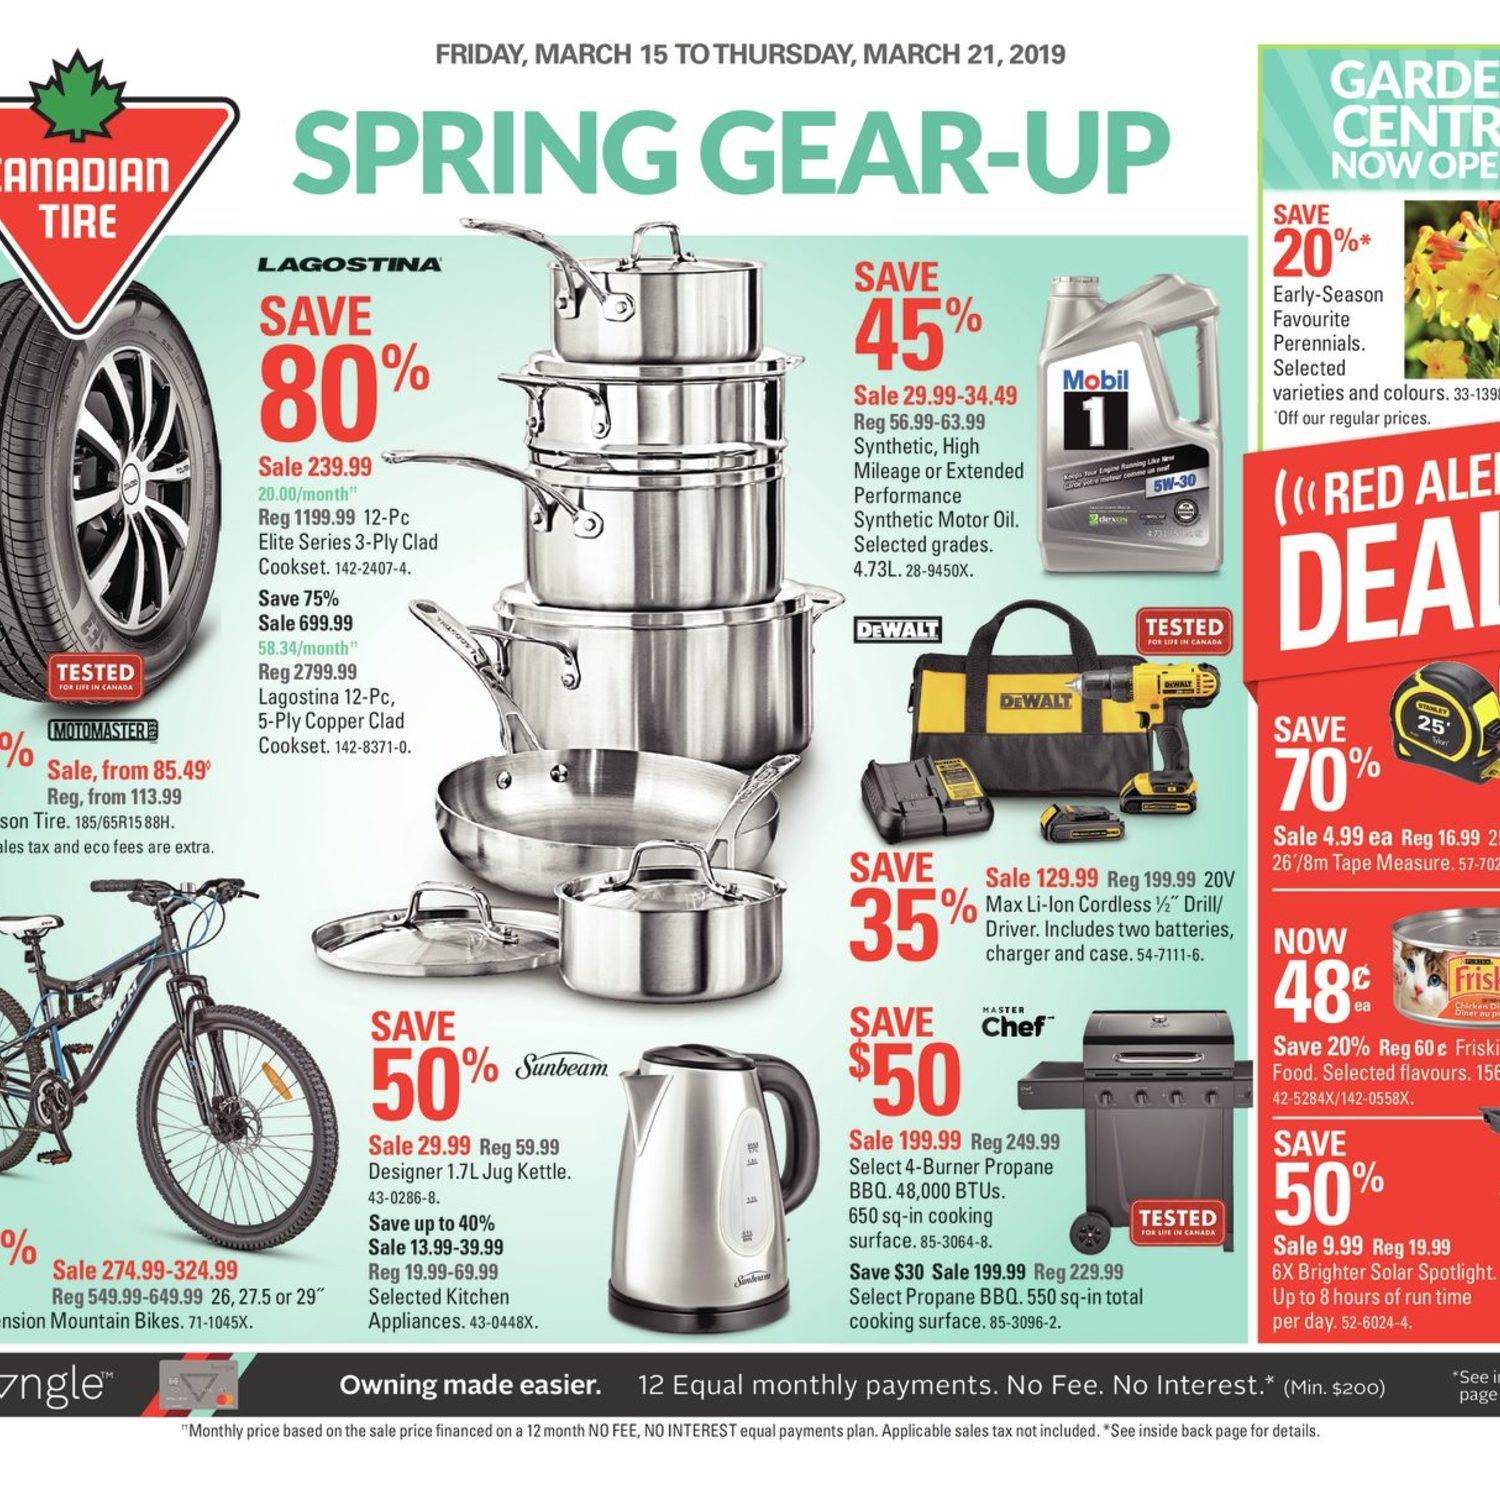 Canadian Tire Weekly Flyer - Weekly - Spring Gear-Up - Mar 15 – 21